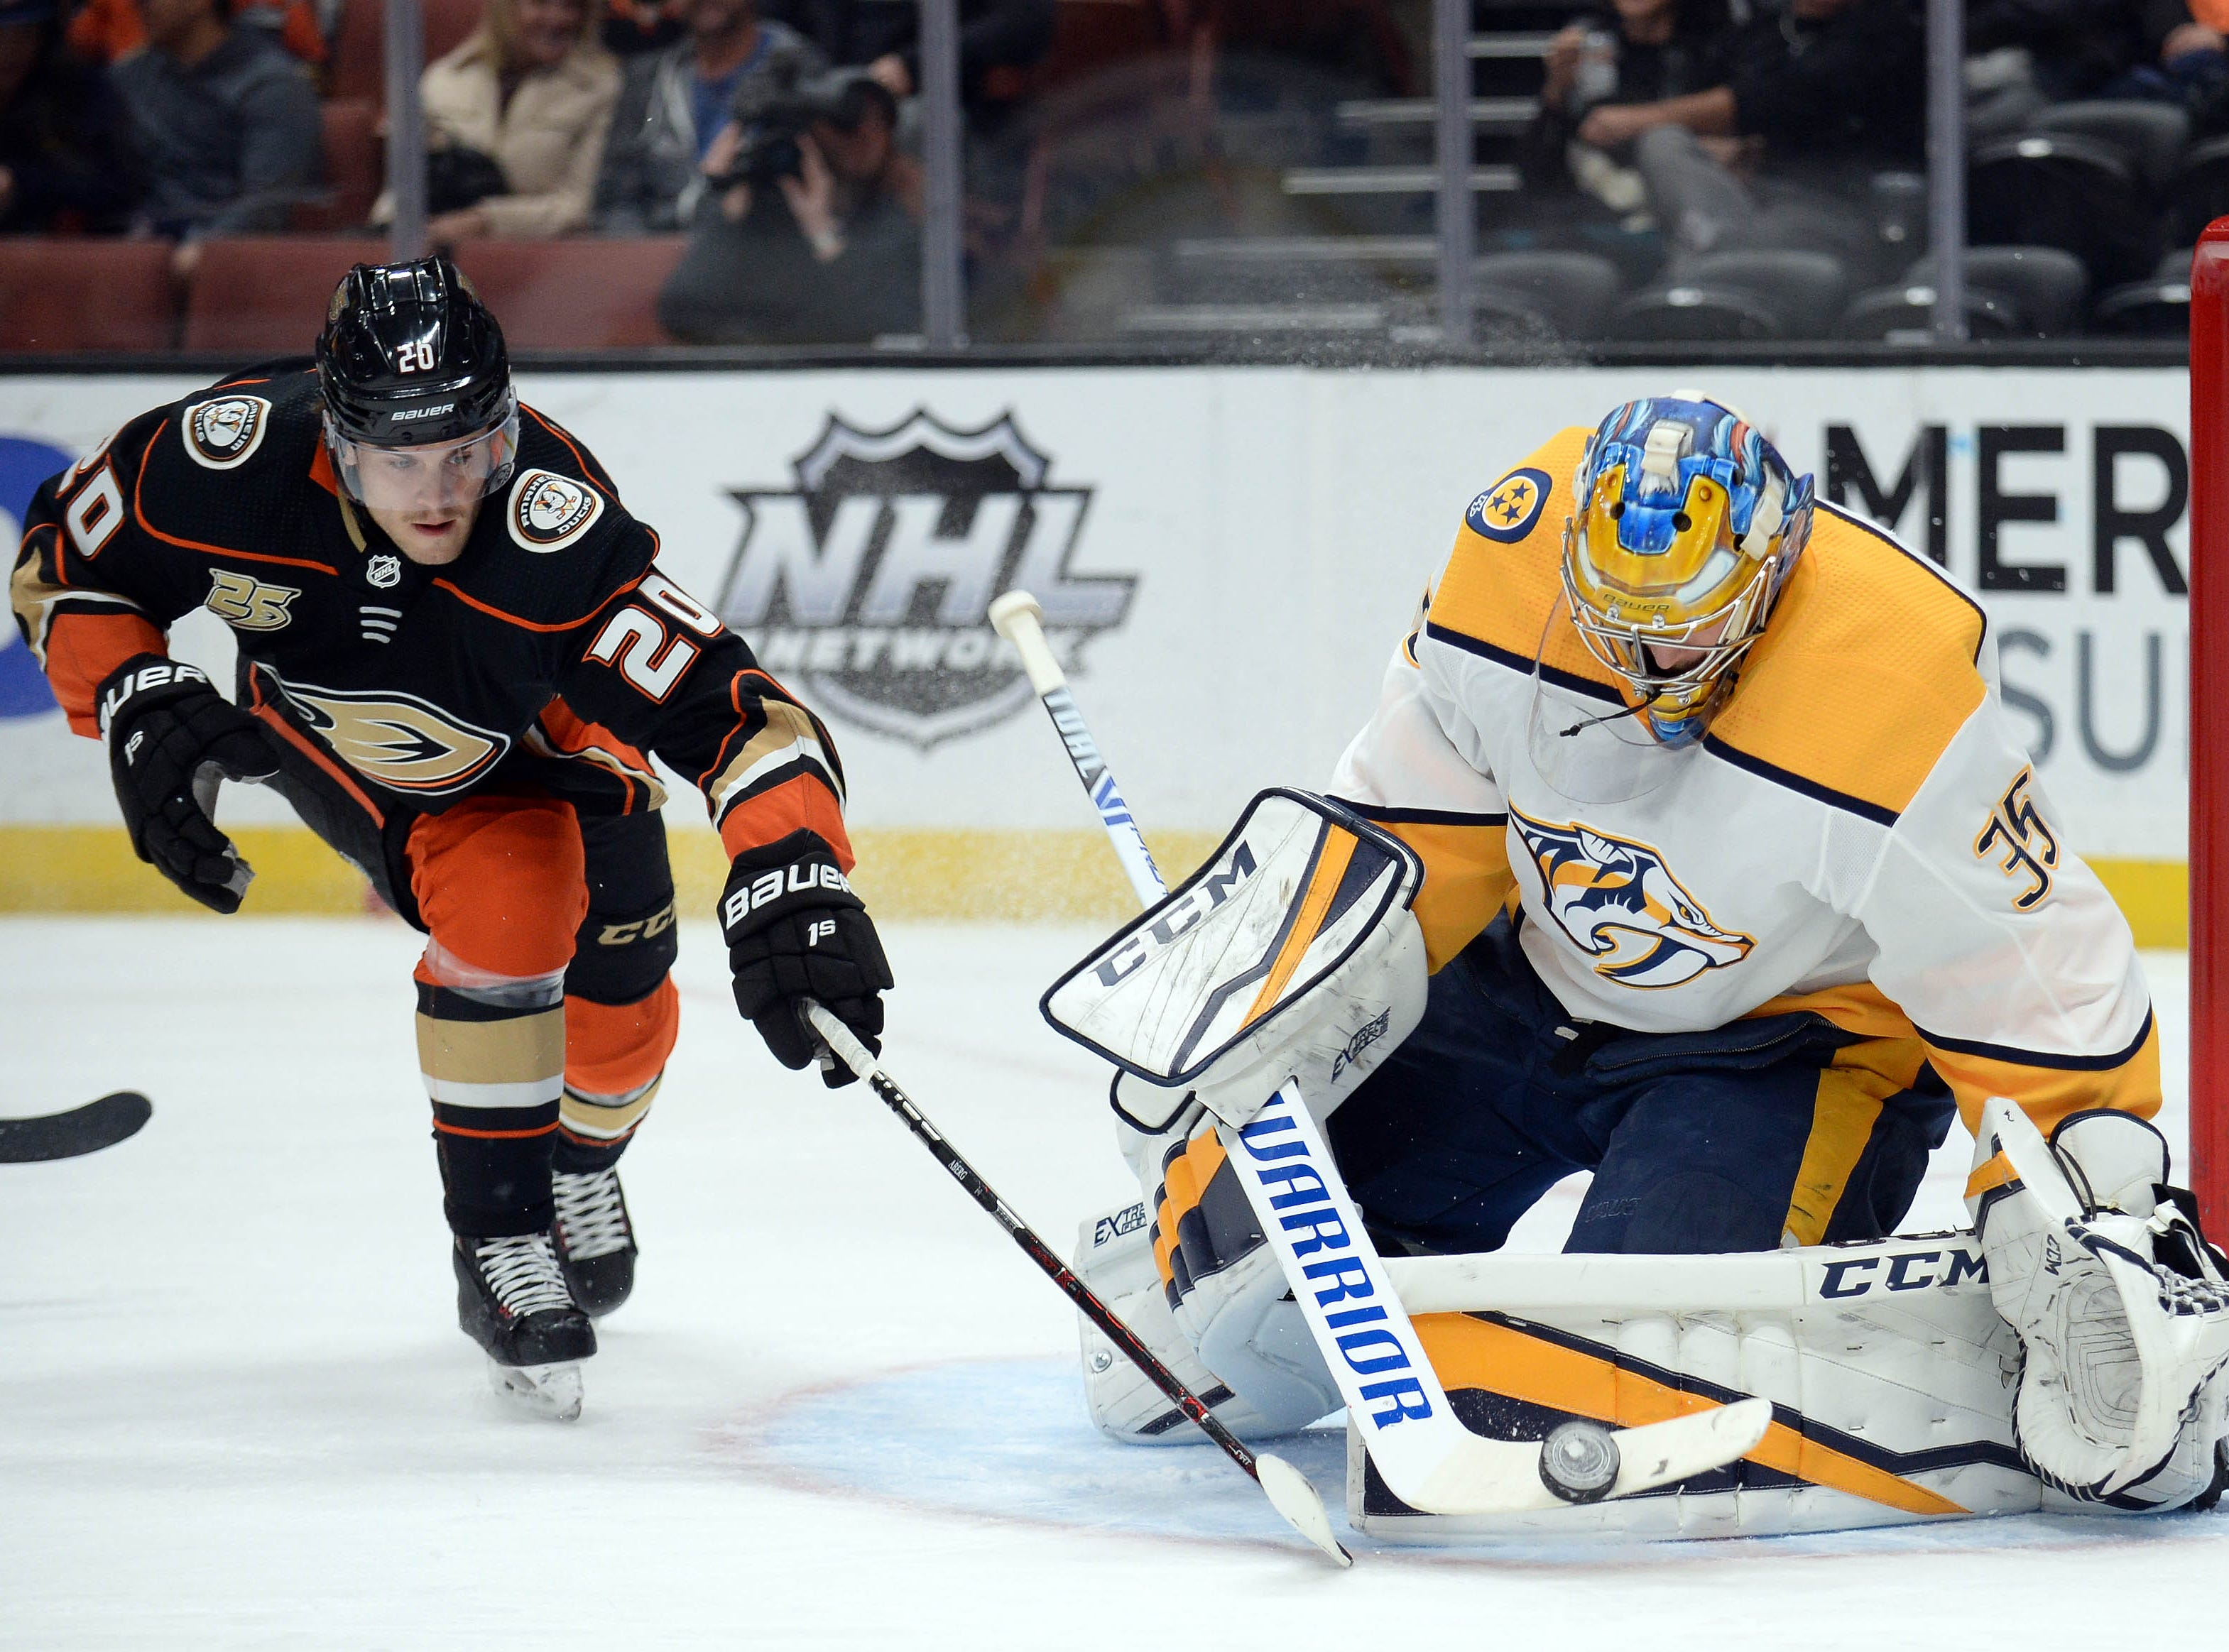 Nov. 12: Ducks 2, Predators 1 -- Anaheim Ducks left wing Pontus Aberg (20) moves in for the puck against Nashville Predators goaltender Pekka Rinne (35) during the second period at Honda Center.